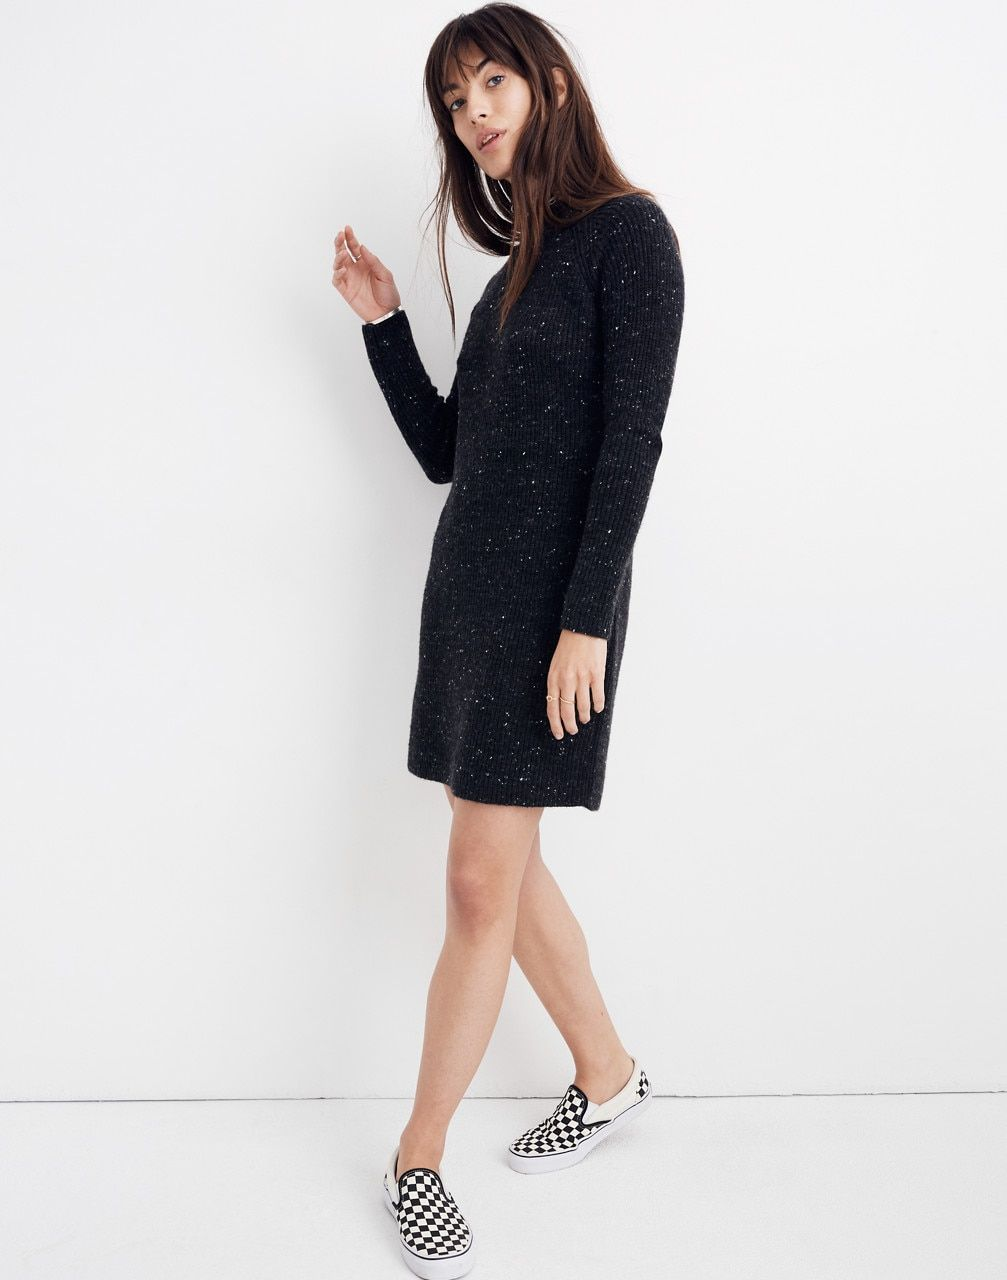 8a690e46d1c Donegal Northfield Mockneck Sweater-Dress in Coziest Yarn in donegal storm  image 1